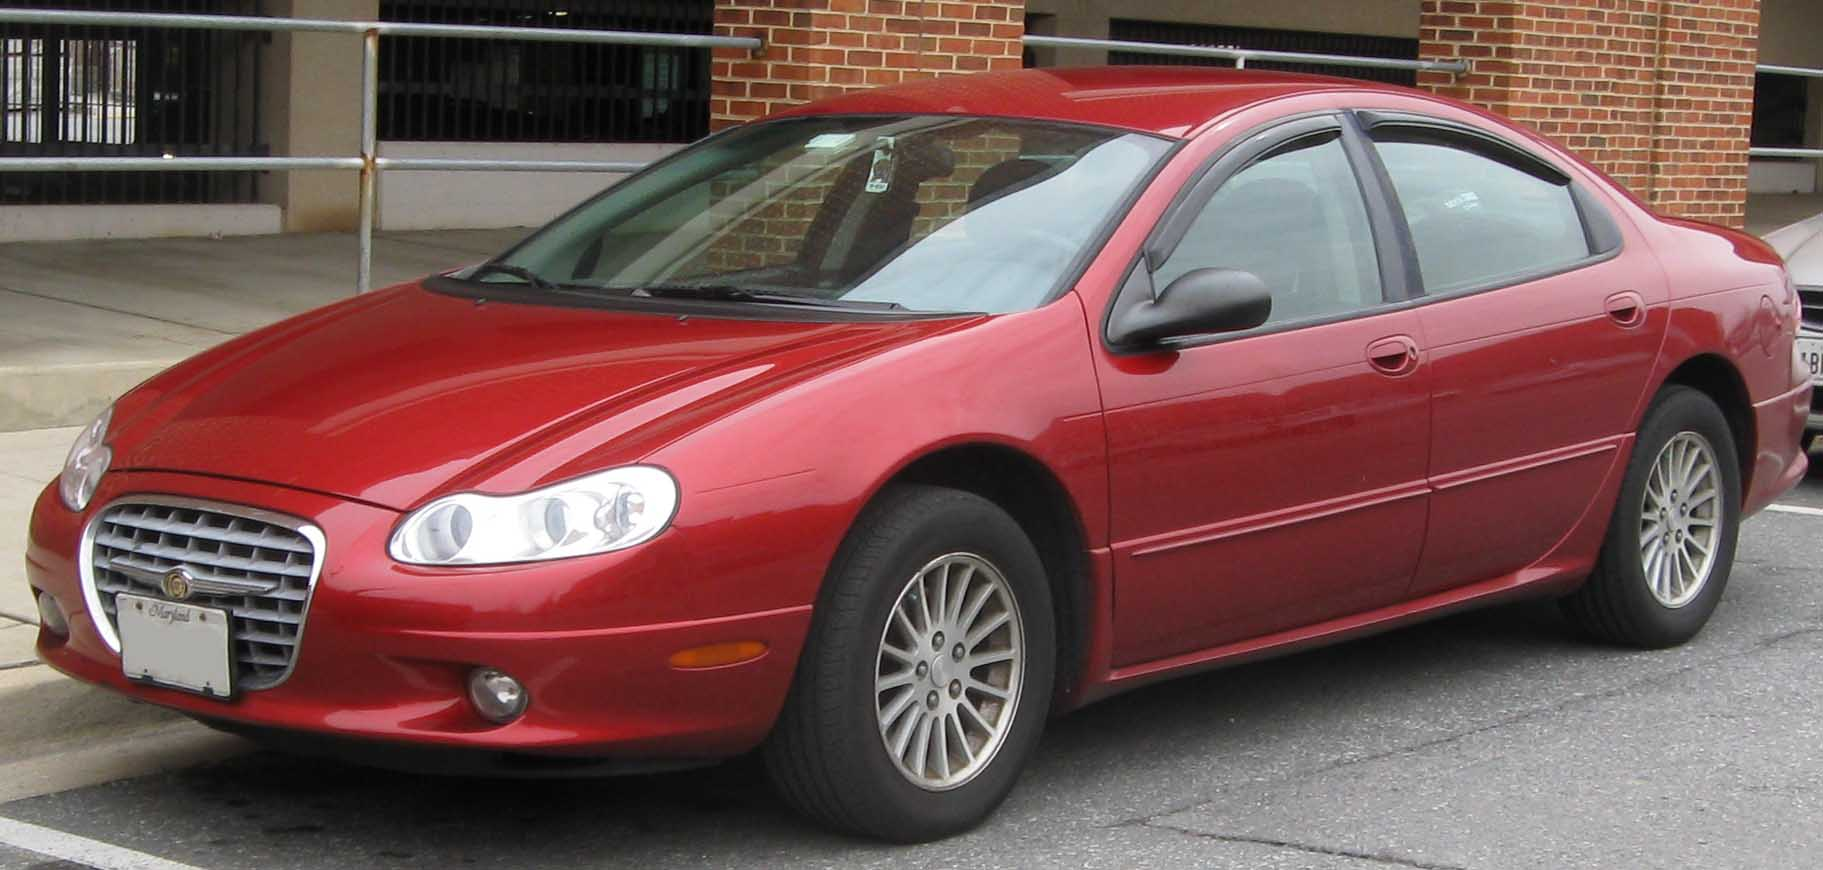 1998 Chrysler Concorde #6